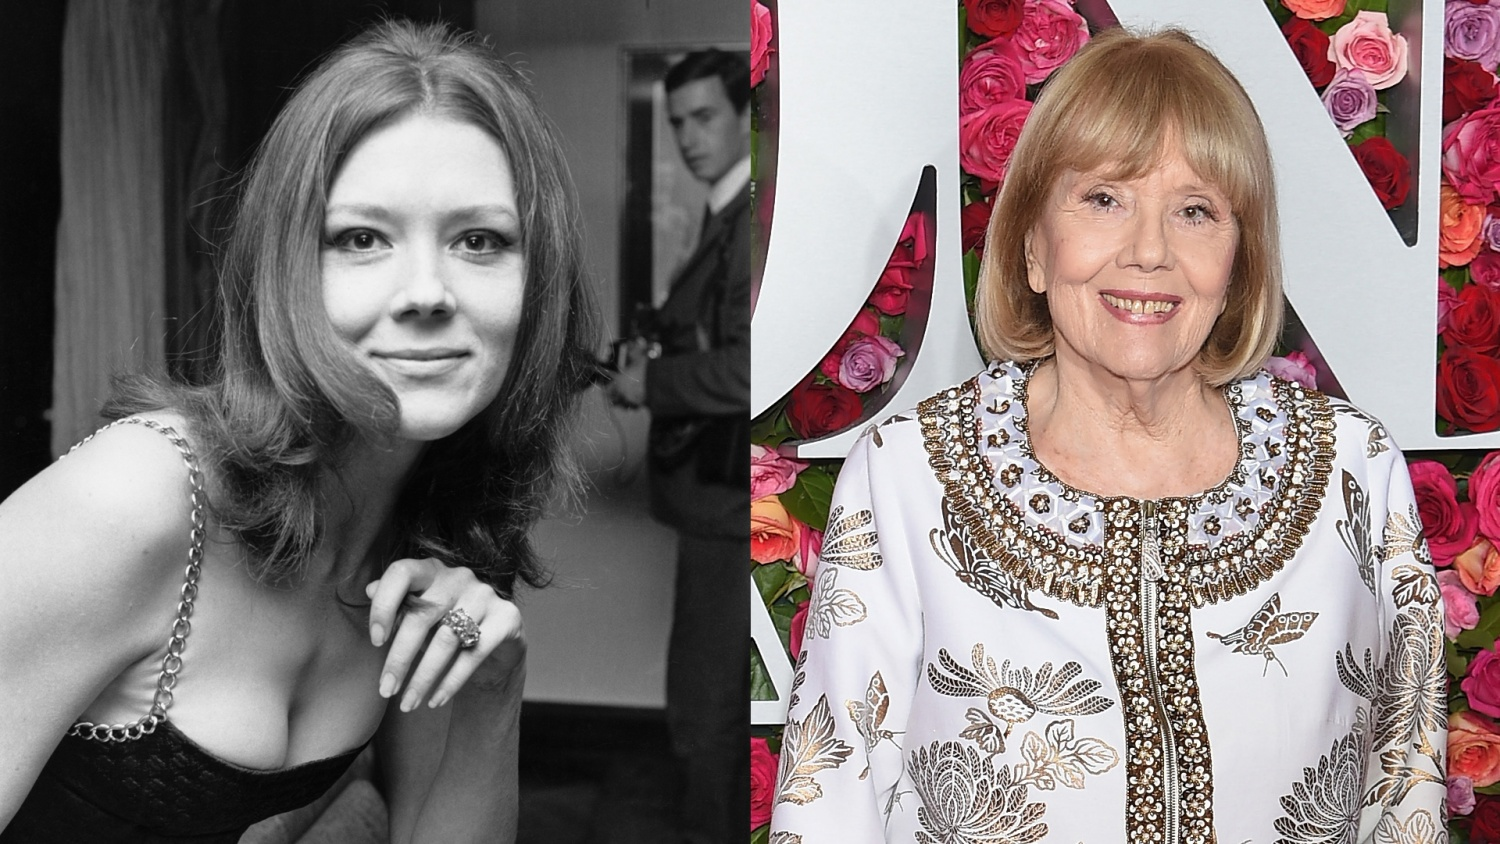 james bond the avengers and game of thrones actress diana rigg passed away music times thrones actress diana rigg passed away